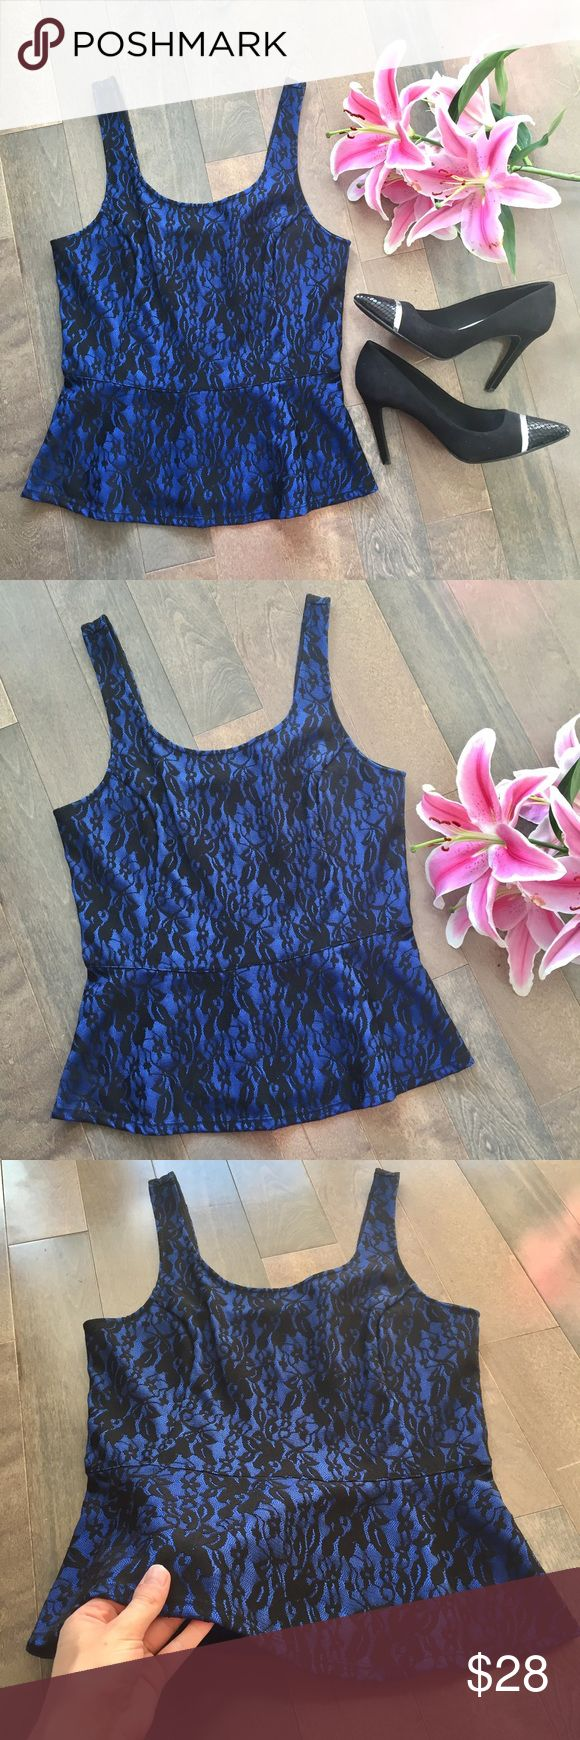 NWT Express Blue Lace Peplum Top! Brand new with tags! Gorgeous blue with black lace peplum top from Express! Zips up the back for the perfect fit. Ideal for work with a blazer or even a night out with skinny jeans! 💕 Size small. Express Tops